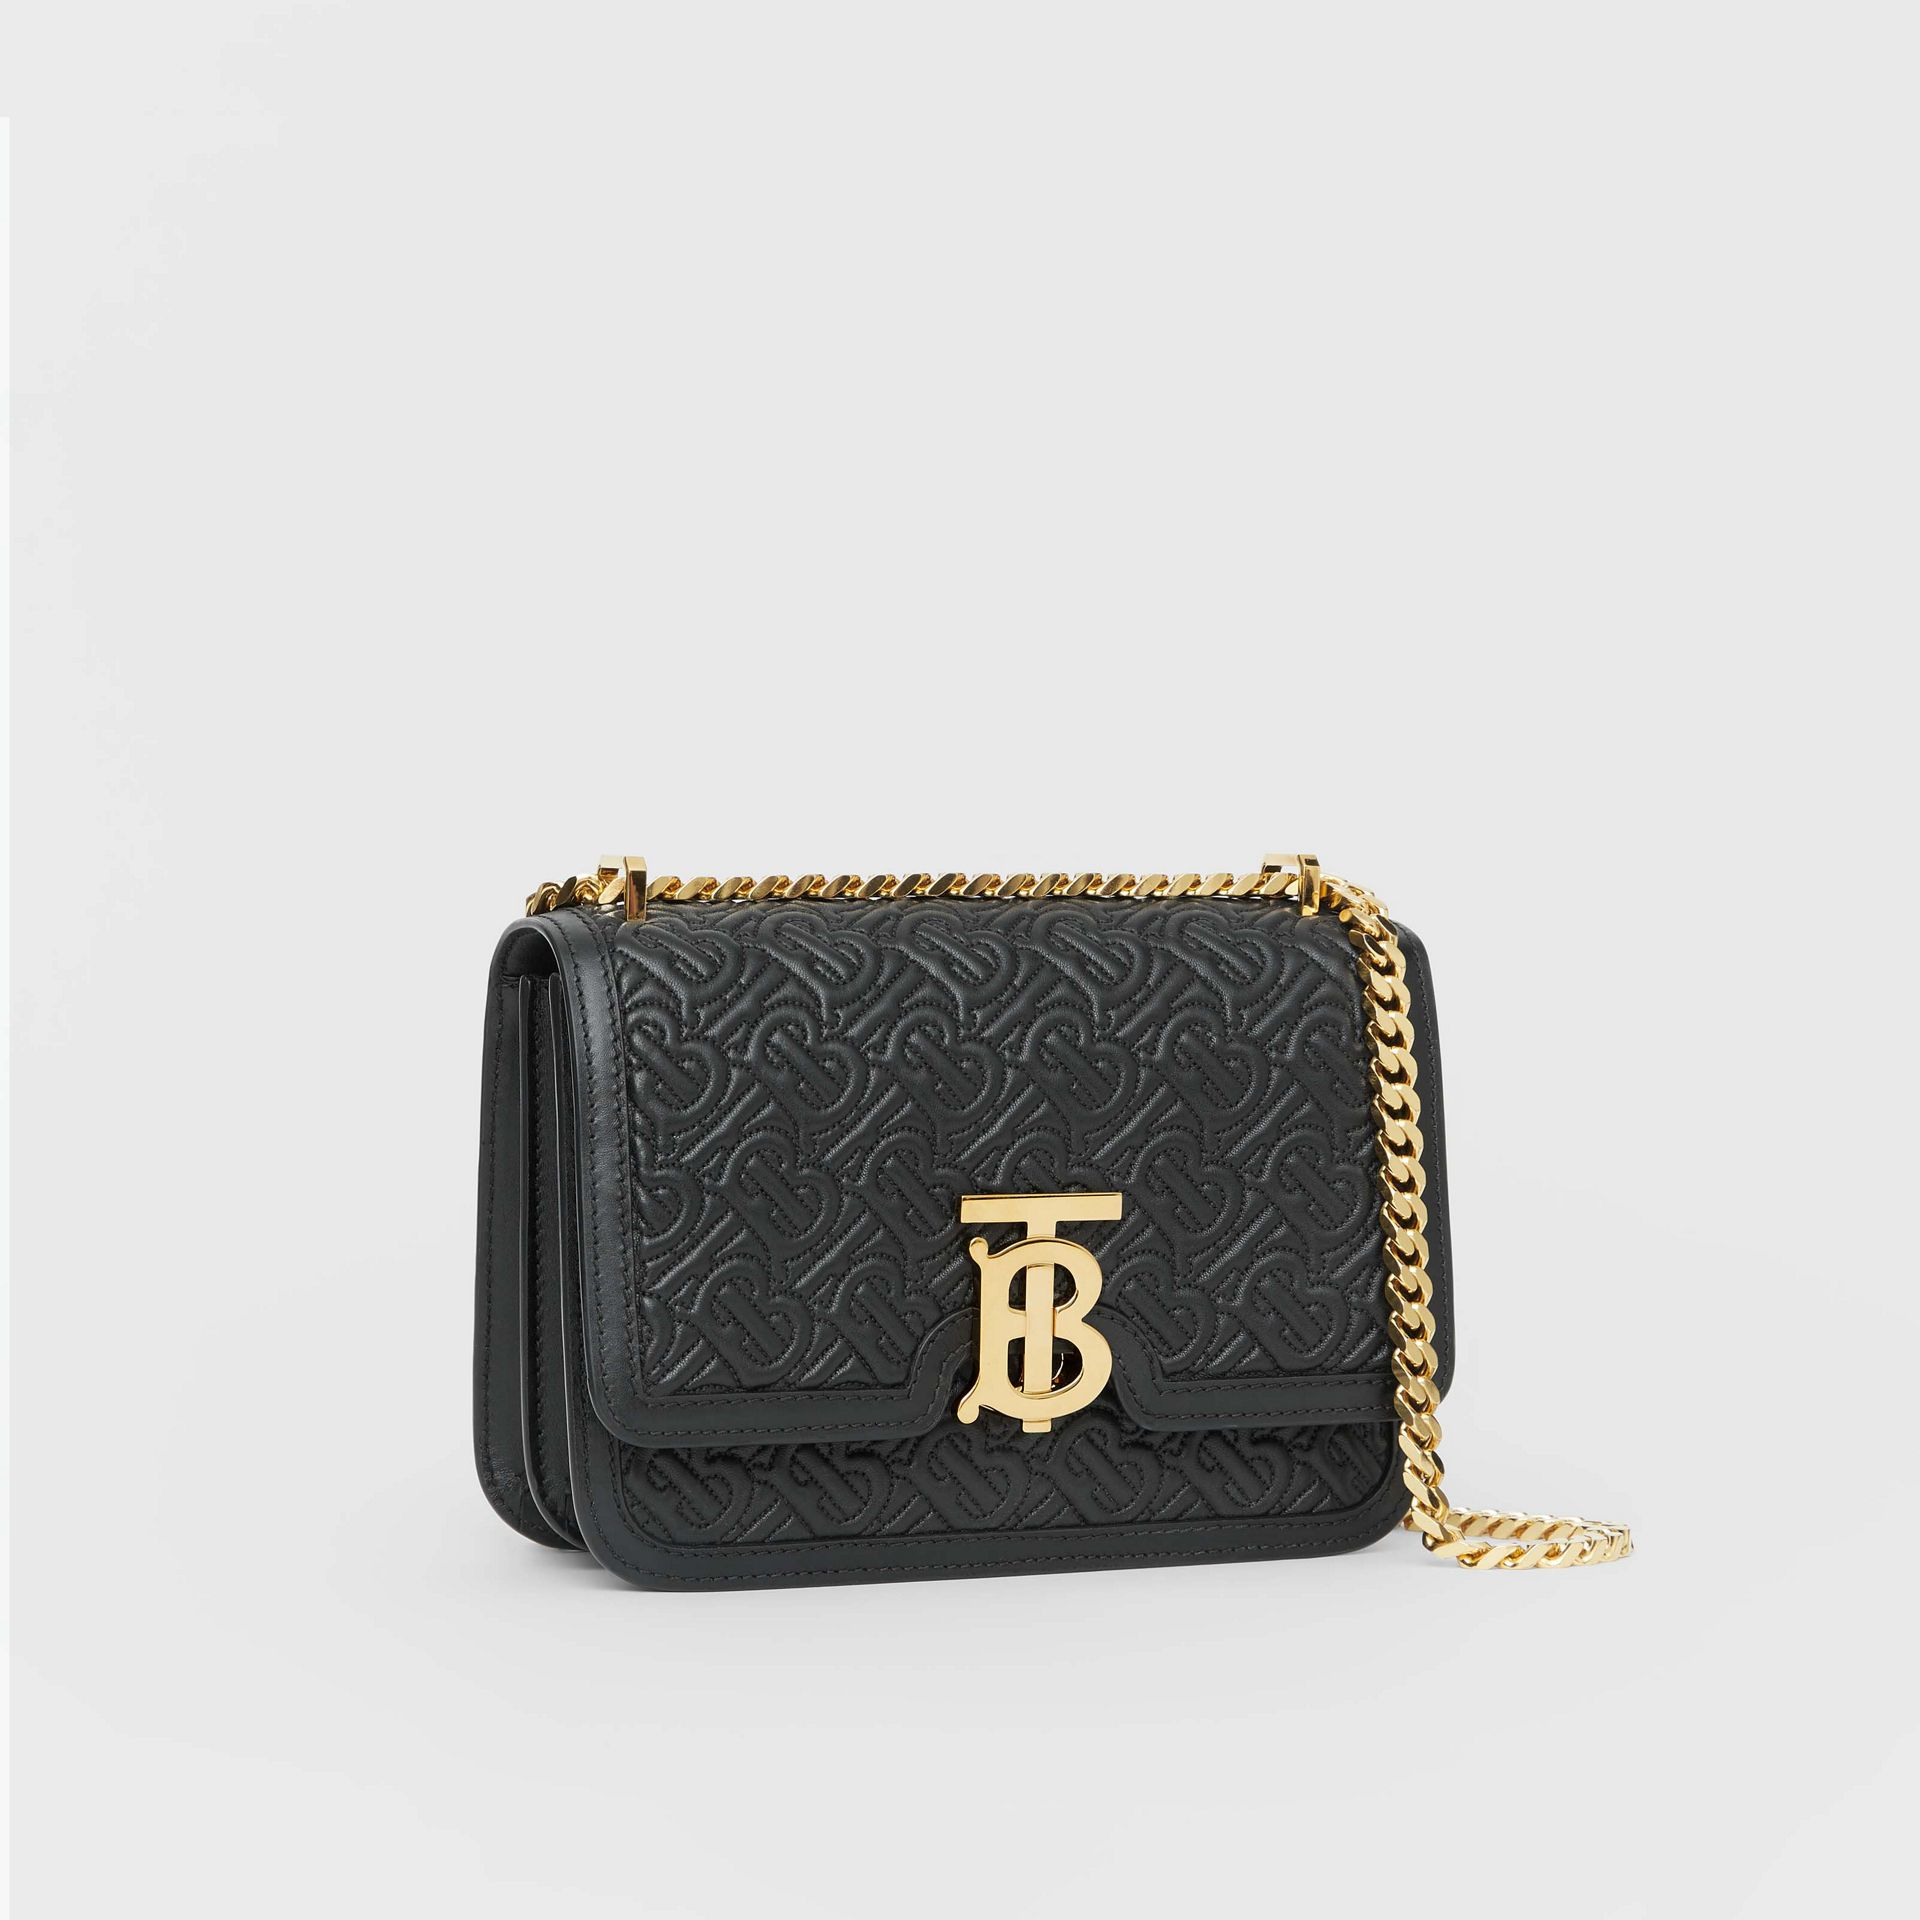 Small Quilted Monogram Lambskin TB Bag in Black - Women | Burberry Canada - gallery image 5